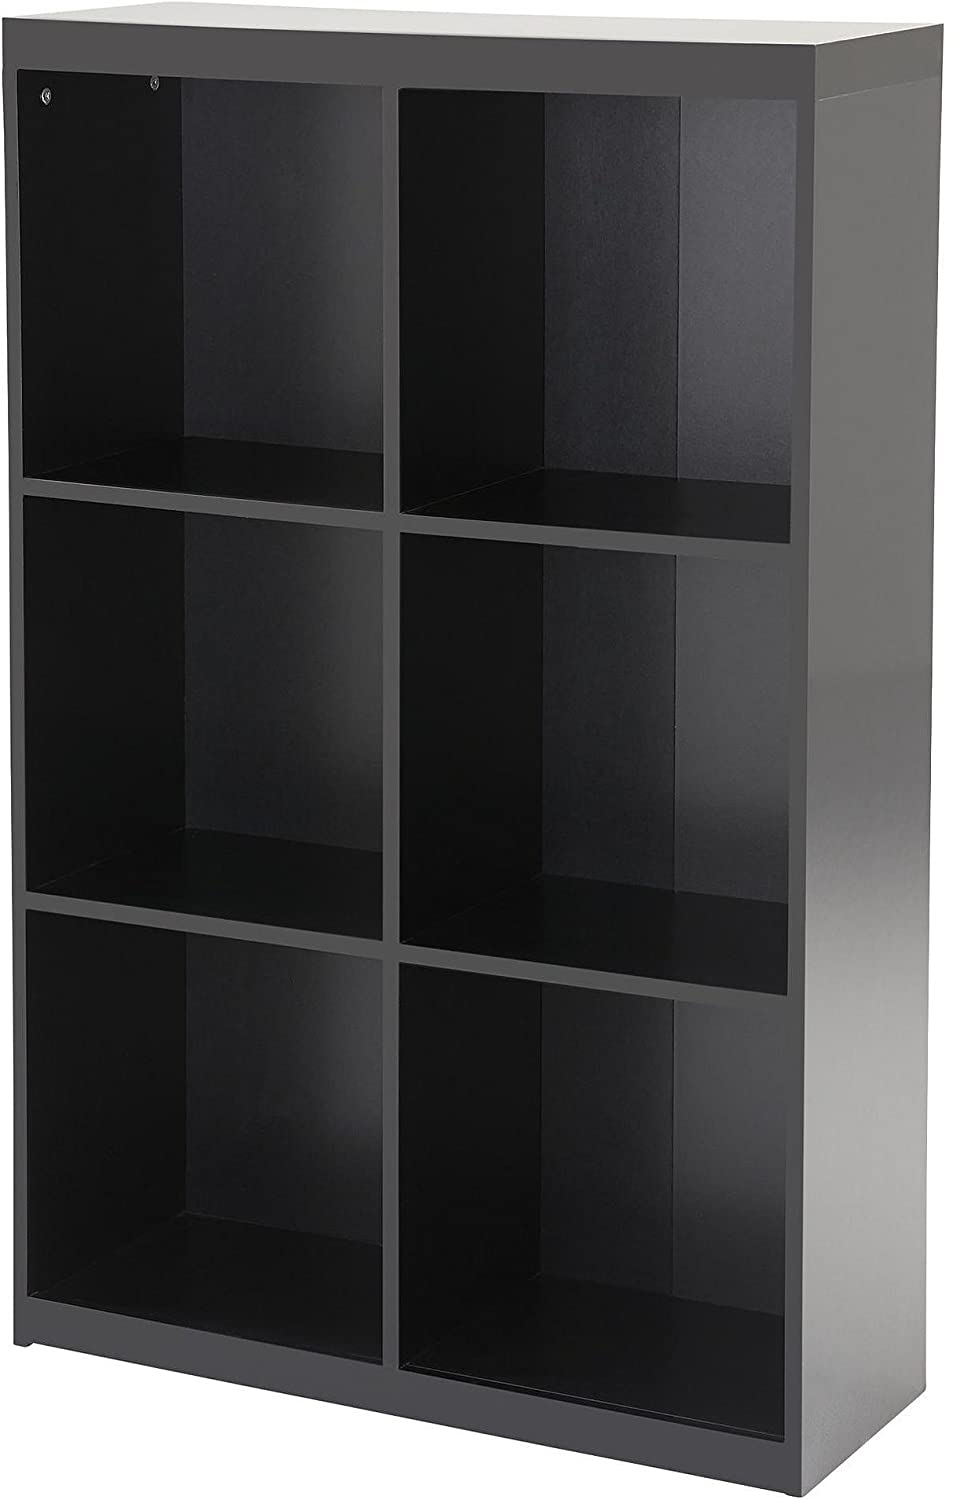 Tesco NEW Maine 2x3 6 Cube Bookcase - Gloss Black